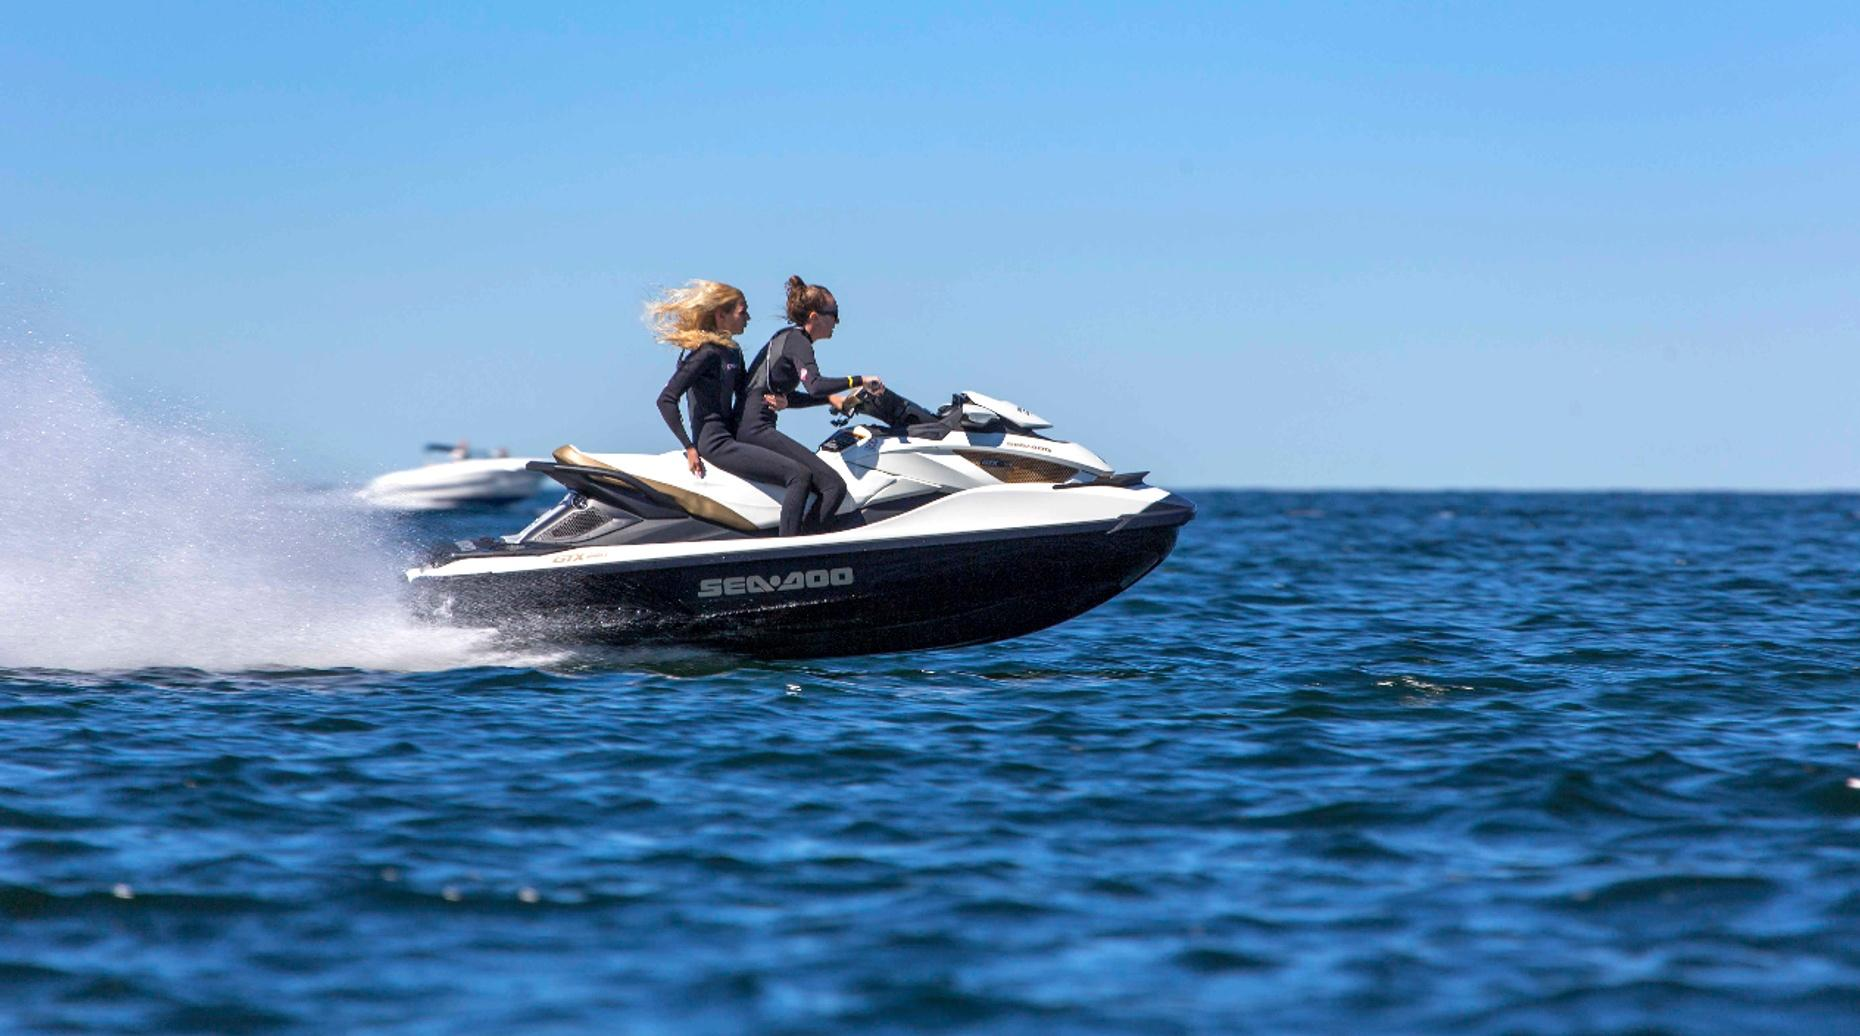 1-Hour Jet Ski Rental in Fort Lauderdale